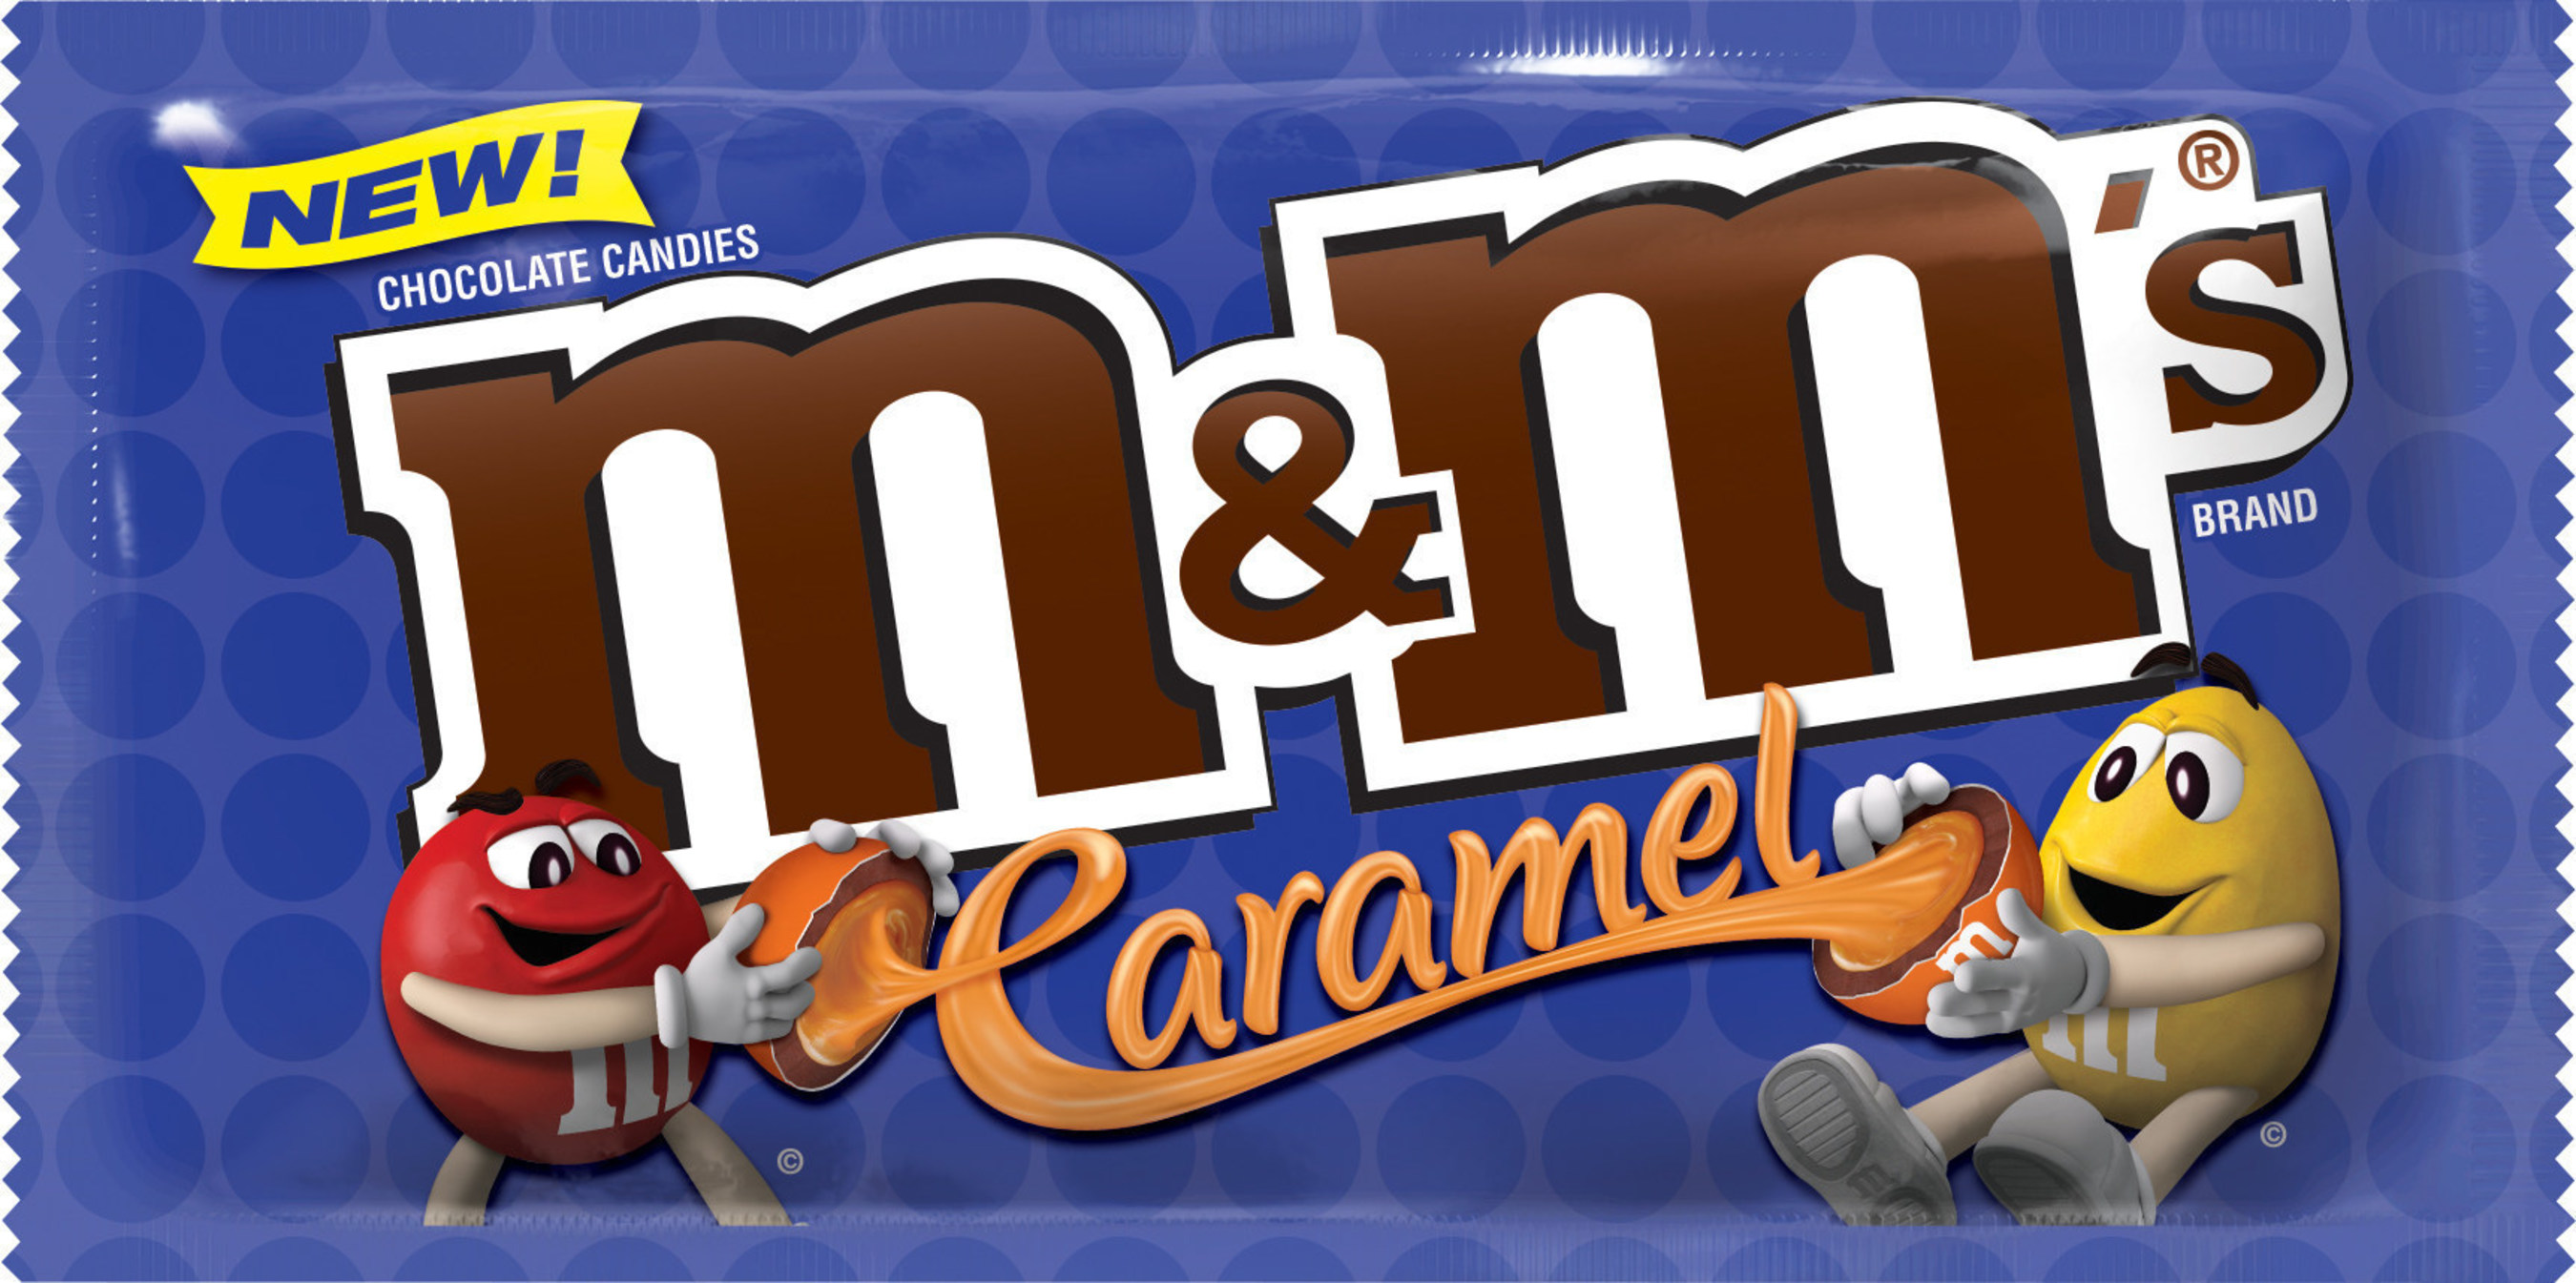 M&M'S(R) Caramel Chocolate Candies are part of an industry-leading lineup of new products that will hit store shelves in the coming months, according to Mars Chocolate North America and Wrigley. The biggest launch in M&M'S(R) Brand history, this innovative treat features a creamy caramel center covered in delicious milk chocolate, enclosed in a colorful candy shell.